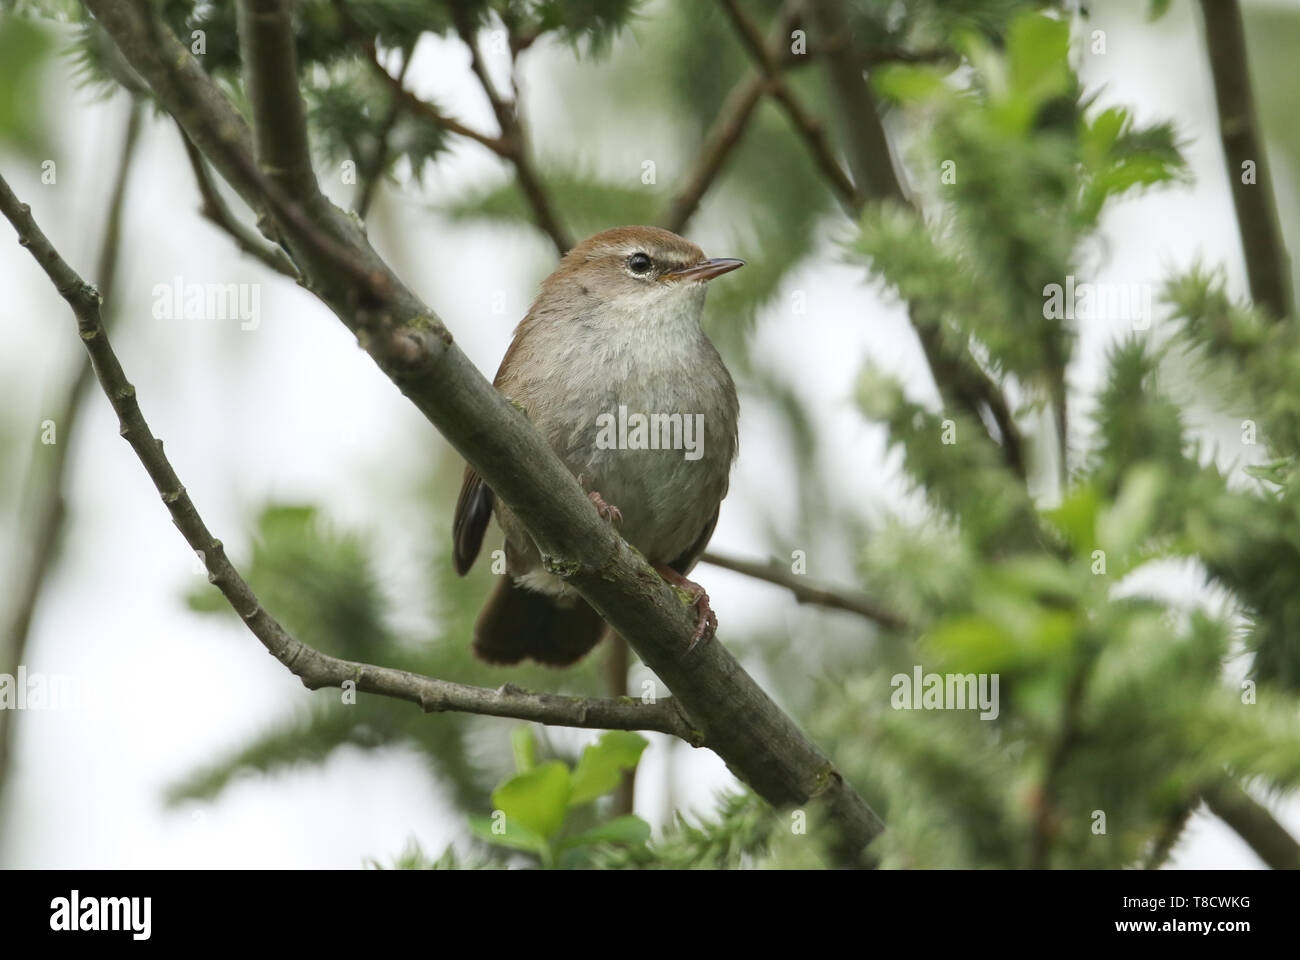 A shy and elusive Cetti's Warbler (Cettia cetti) perched on a branch in a tree. - Stock Image